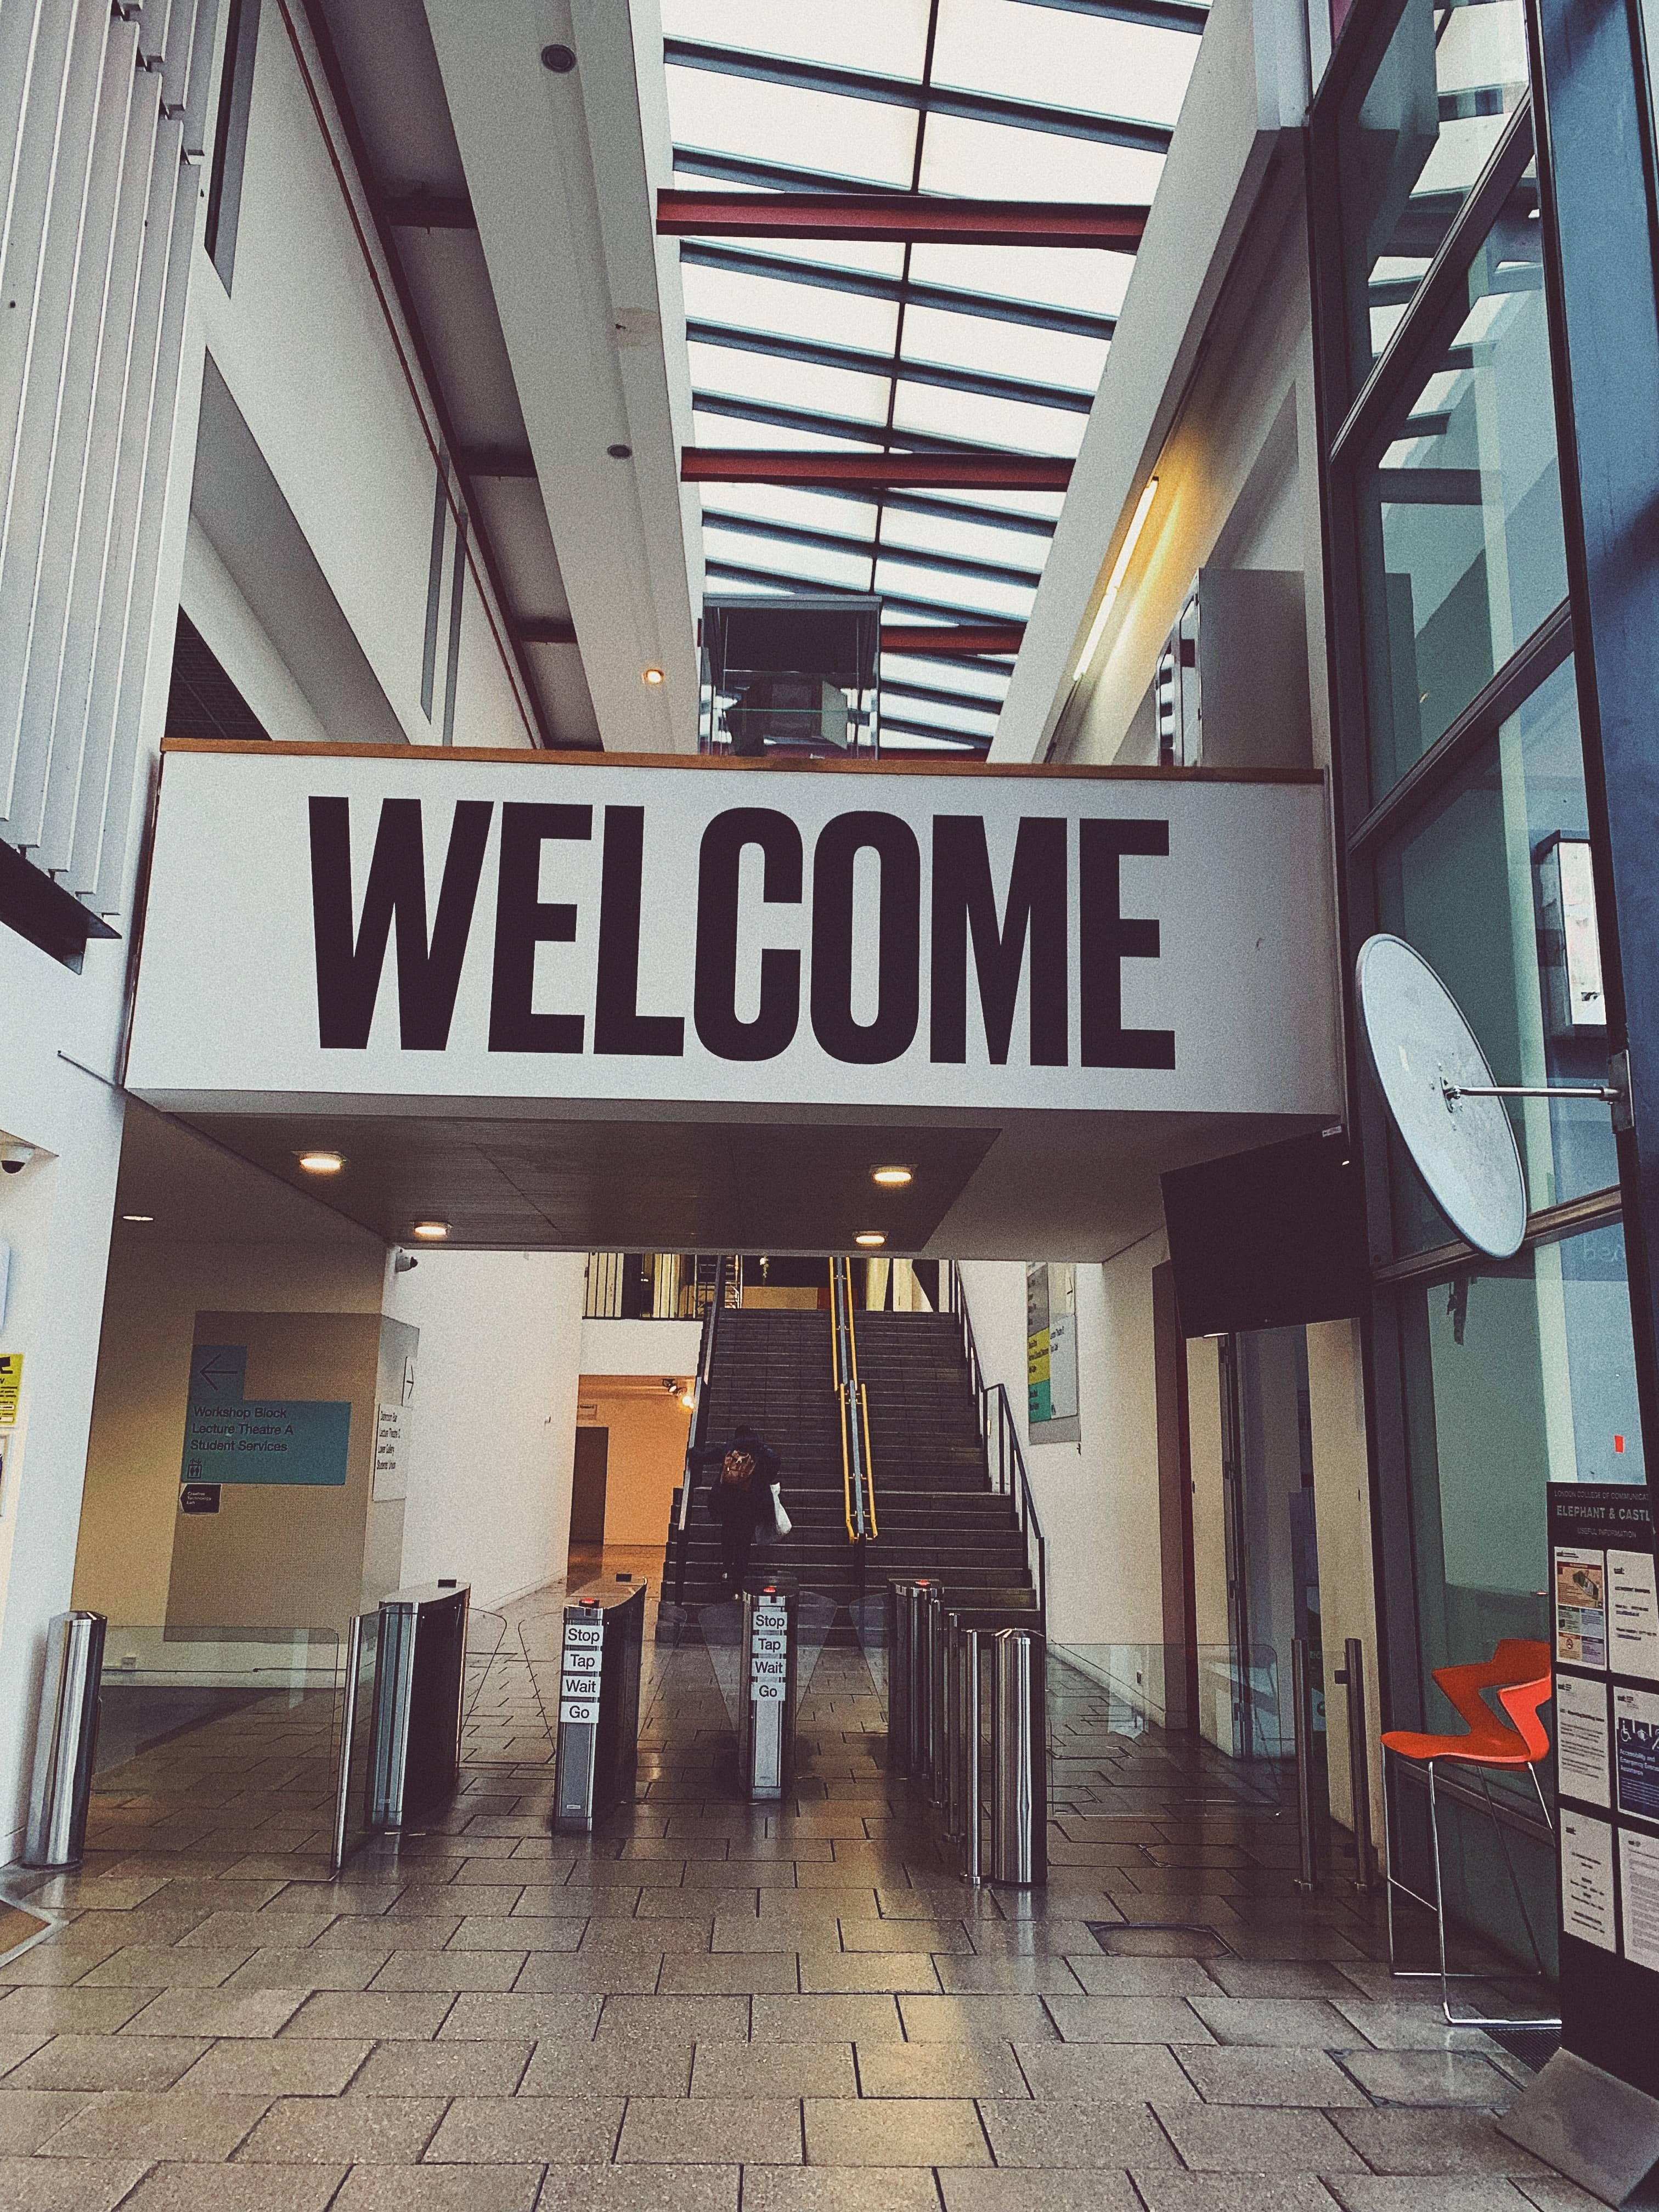 A large welcome sign in the entry of a building